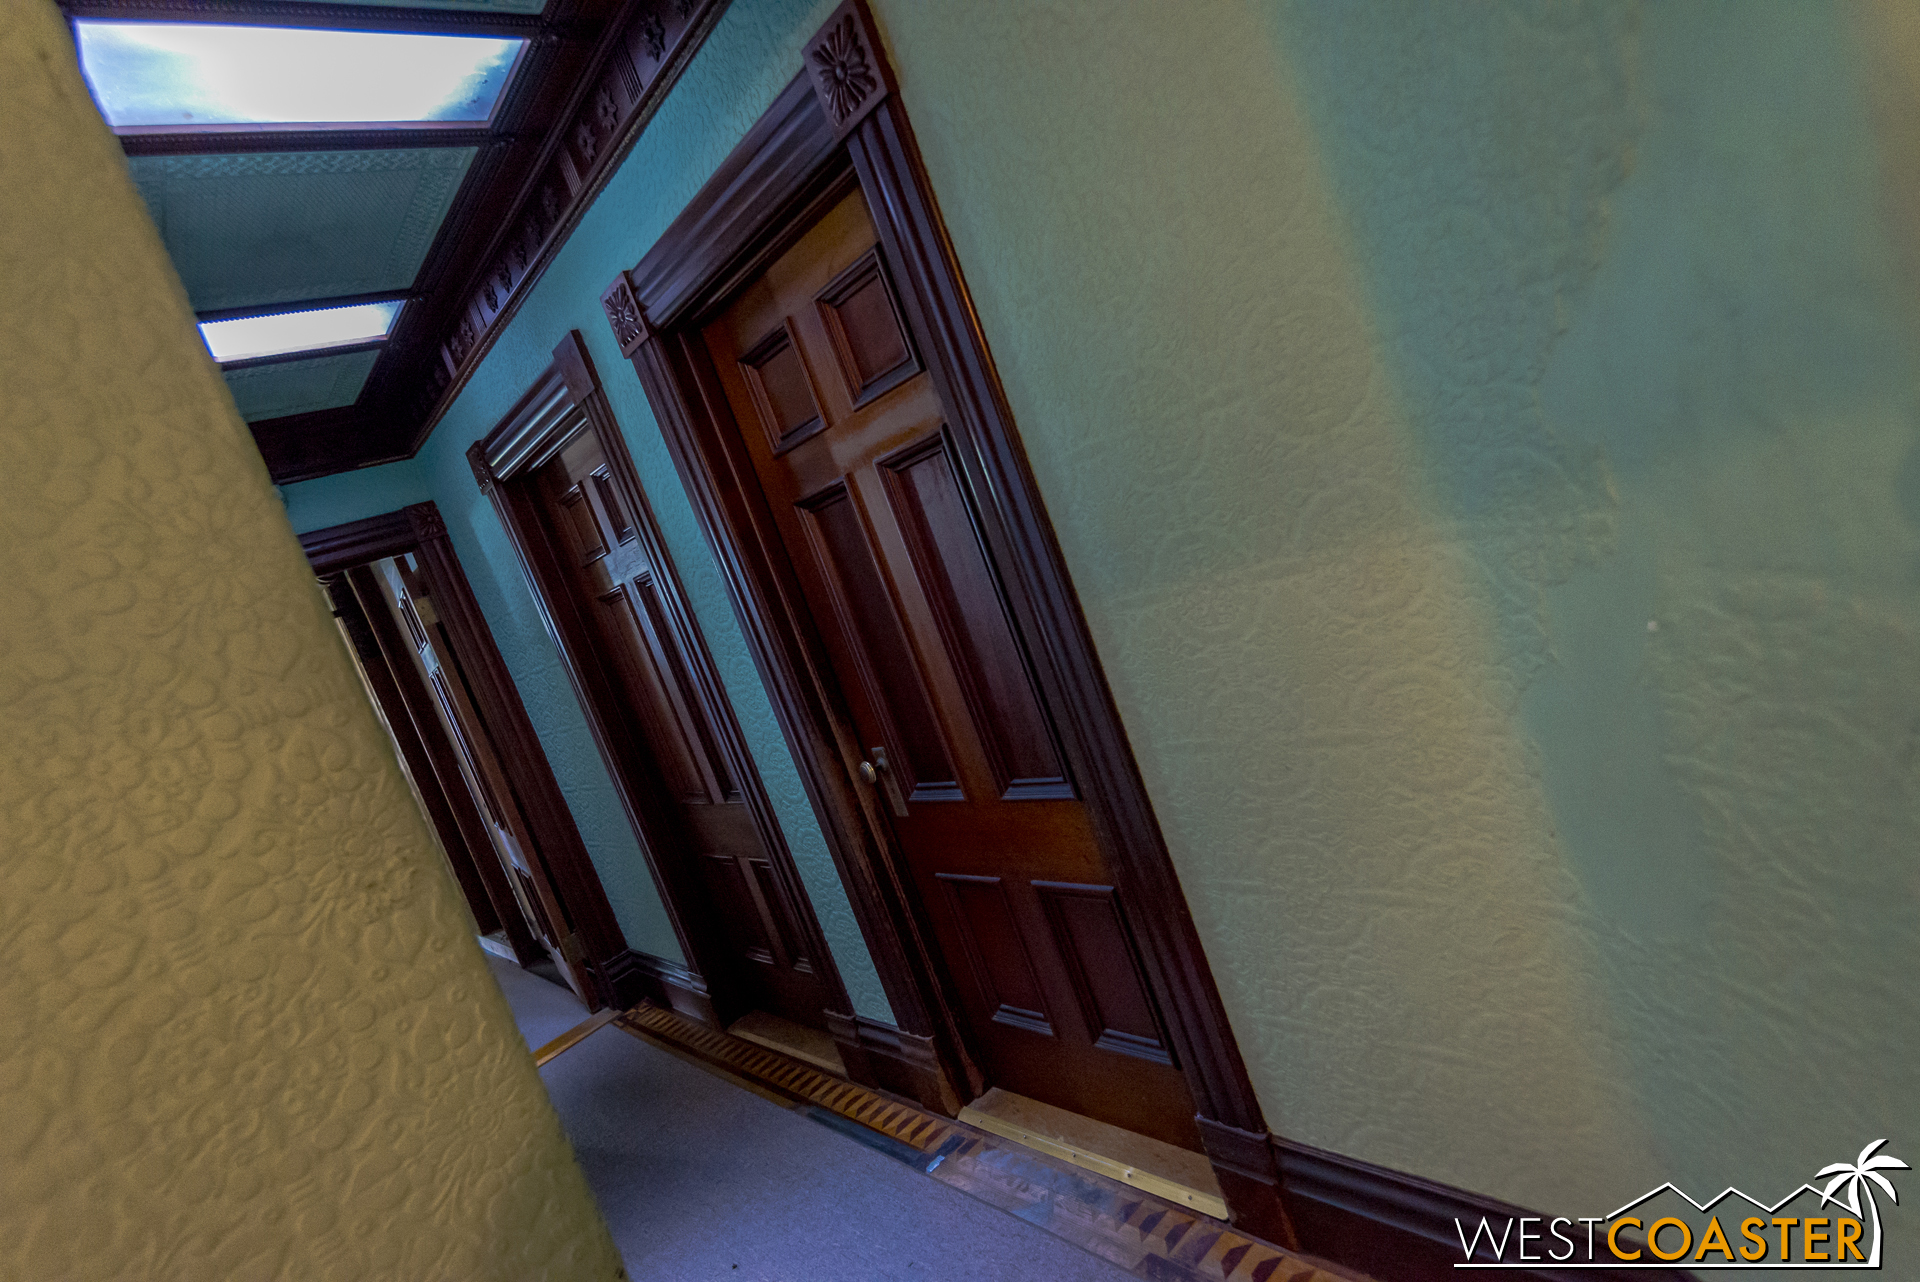 This hallway may call to mind the hallway near the beginning of the Haunted Mansion. Disney Imagineers took inspiration from this house.